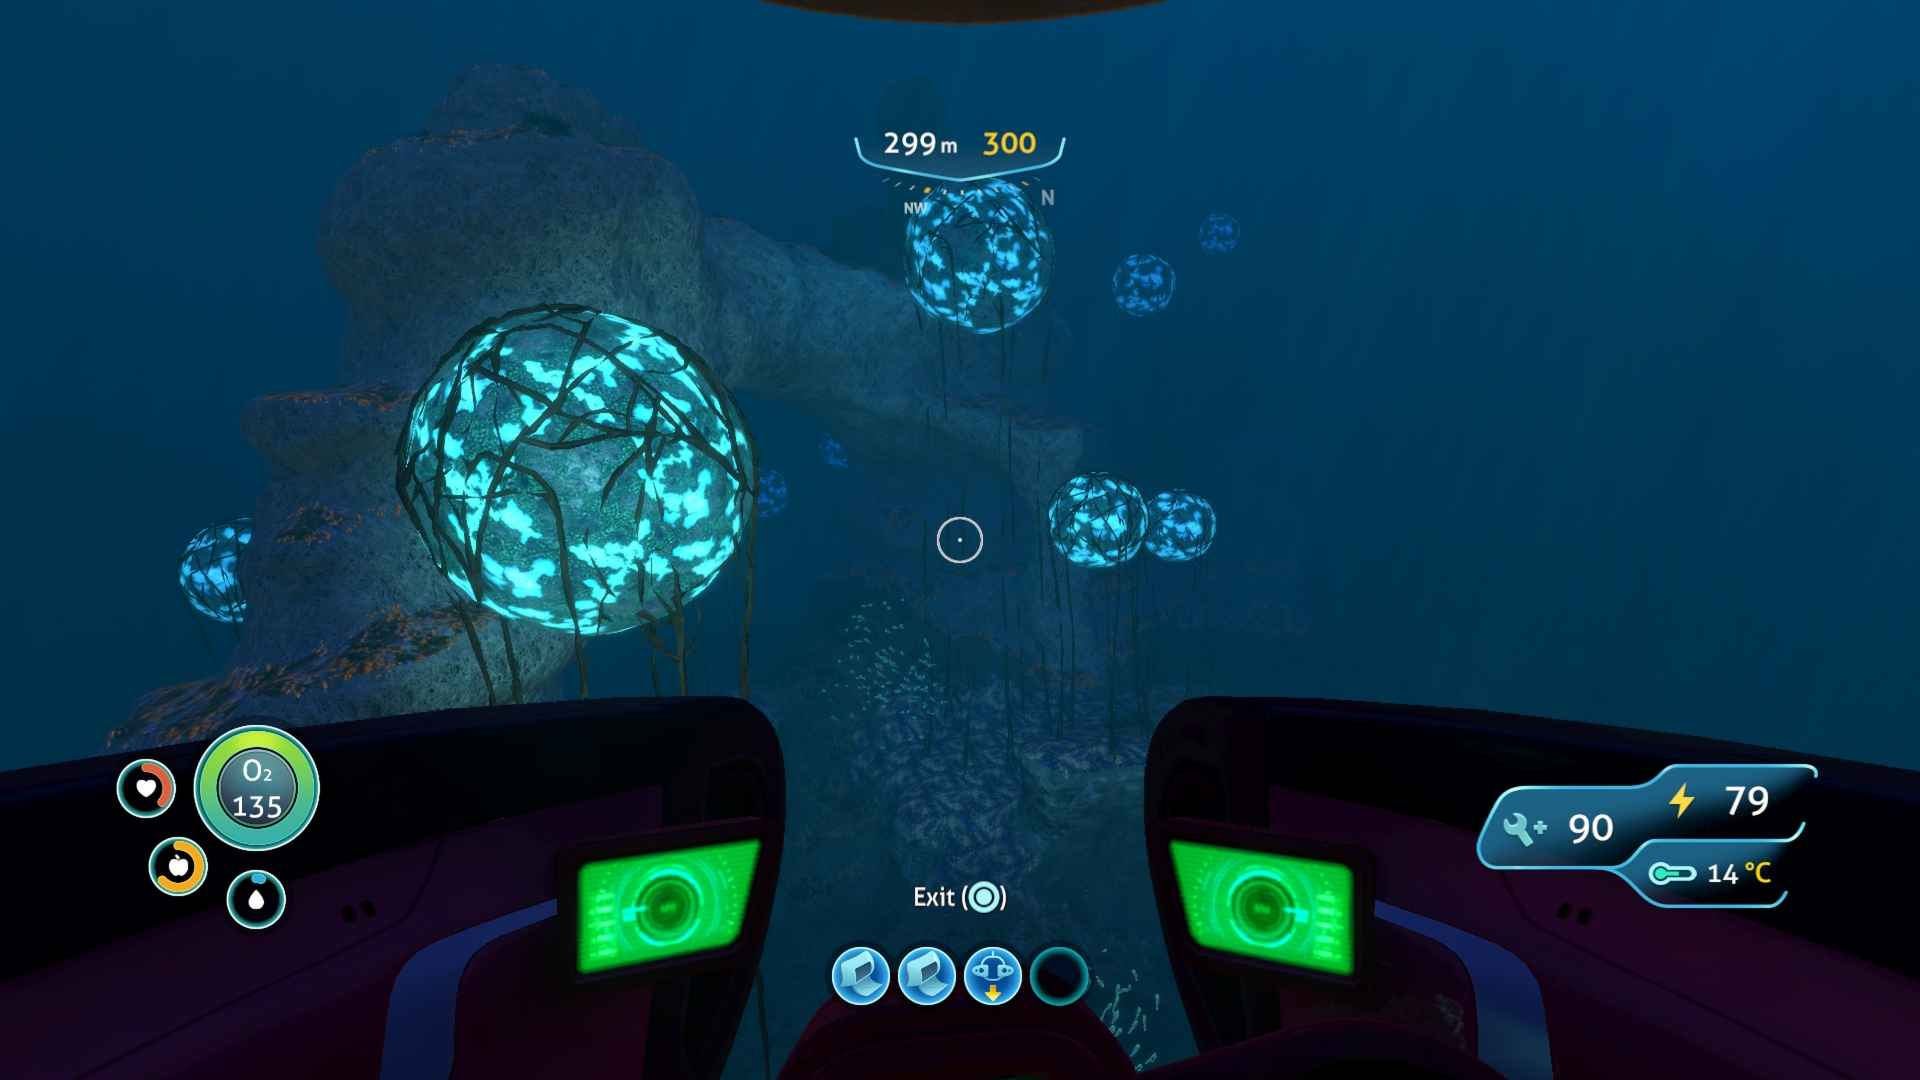 Subnautica Review Ps4 Playstation Universe You may have accidentally made me a happy man, cryocon. subnautica review ps4 playstation